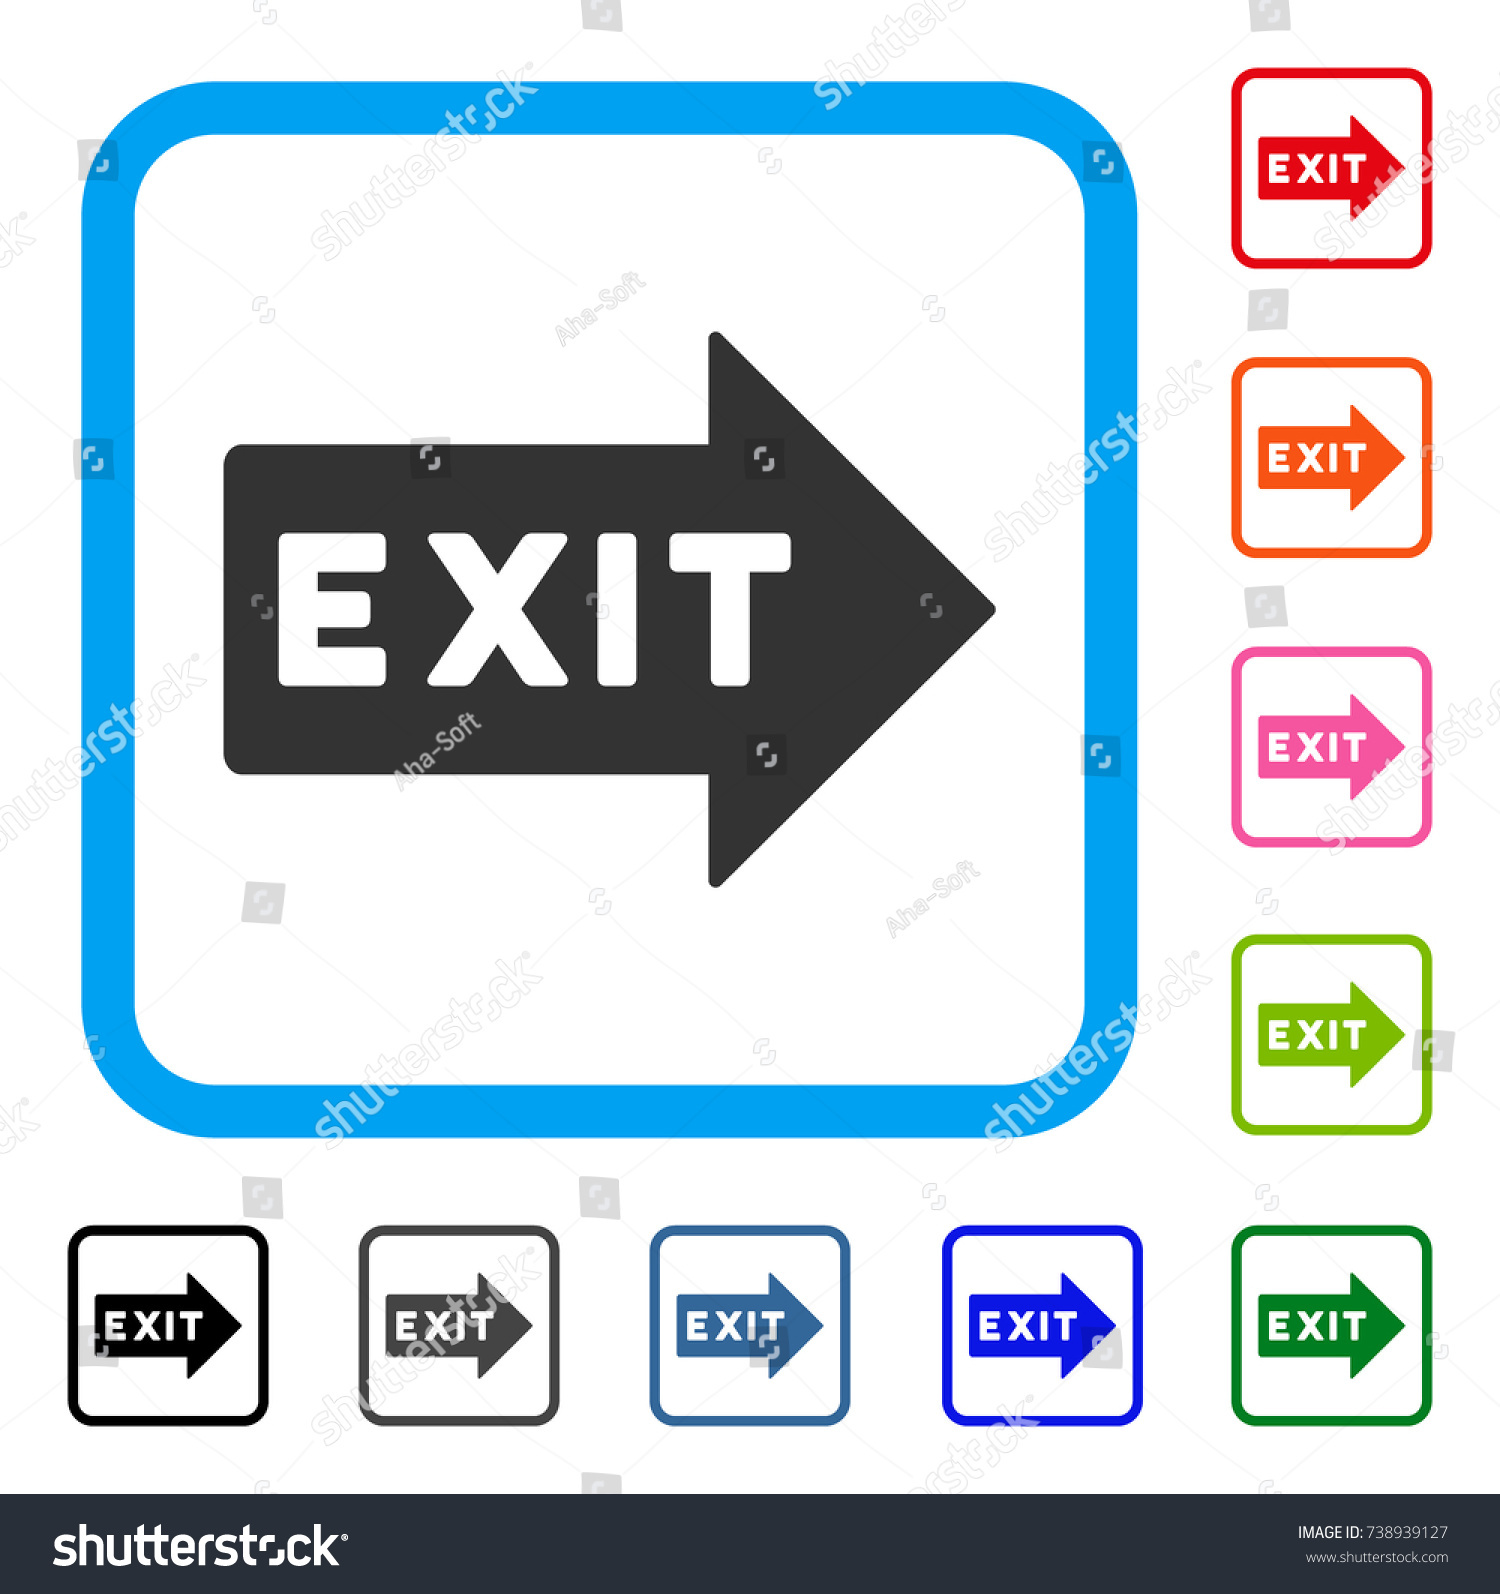 Exit arrow icon flat gray iconic stock vector 738939127 shutterstock exit arrow icon flat gray iconic symbol in a light blue rounded square black buycottarizona Choice Image